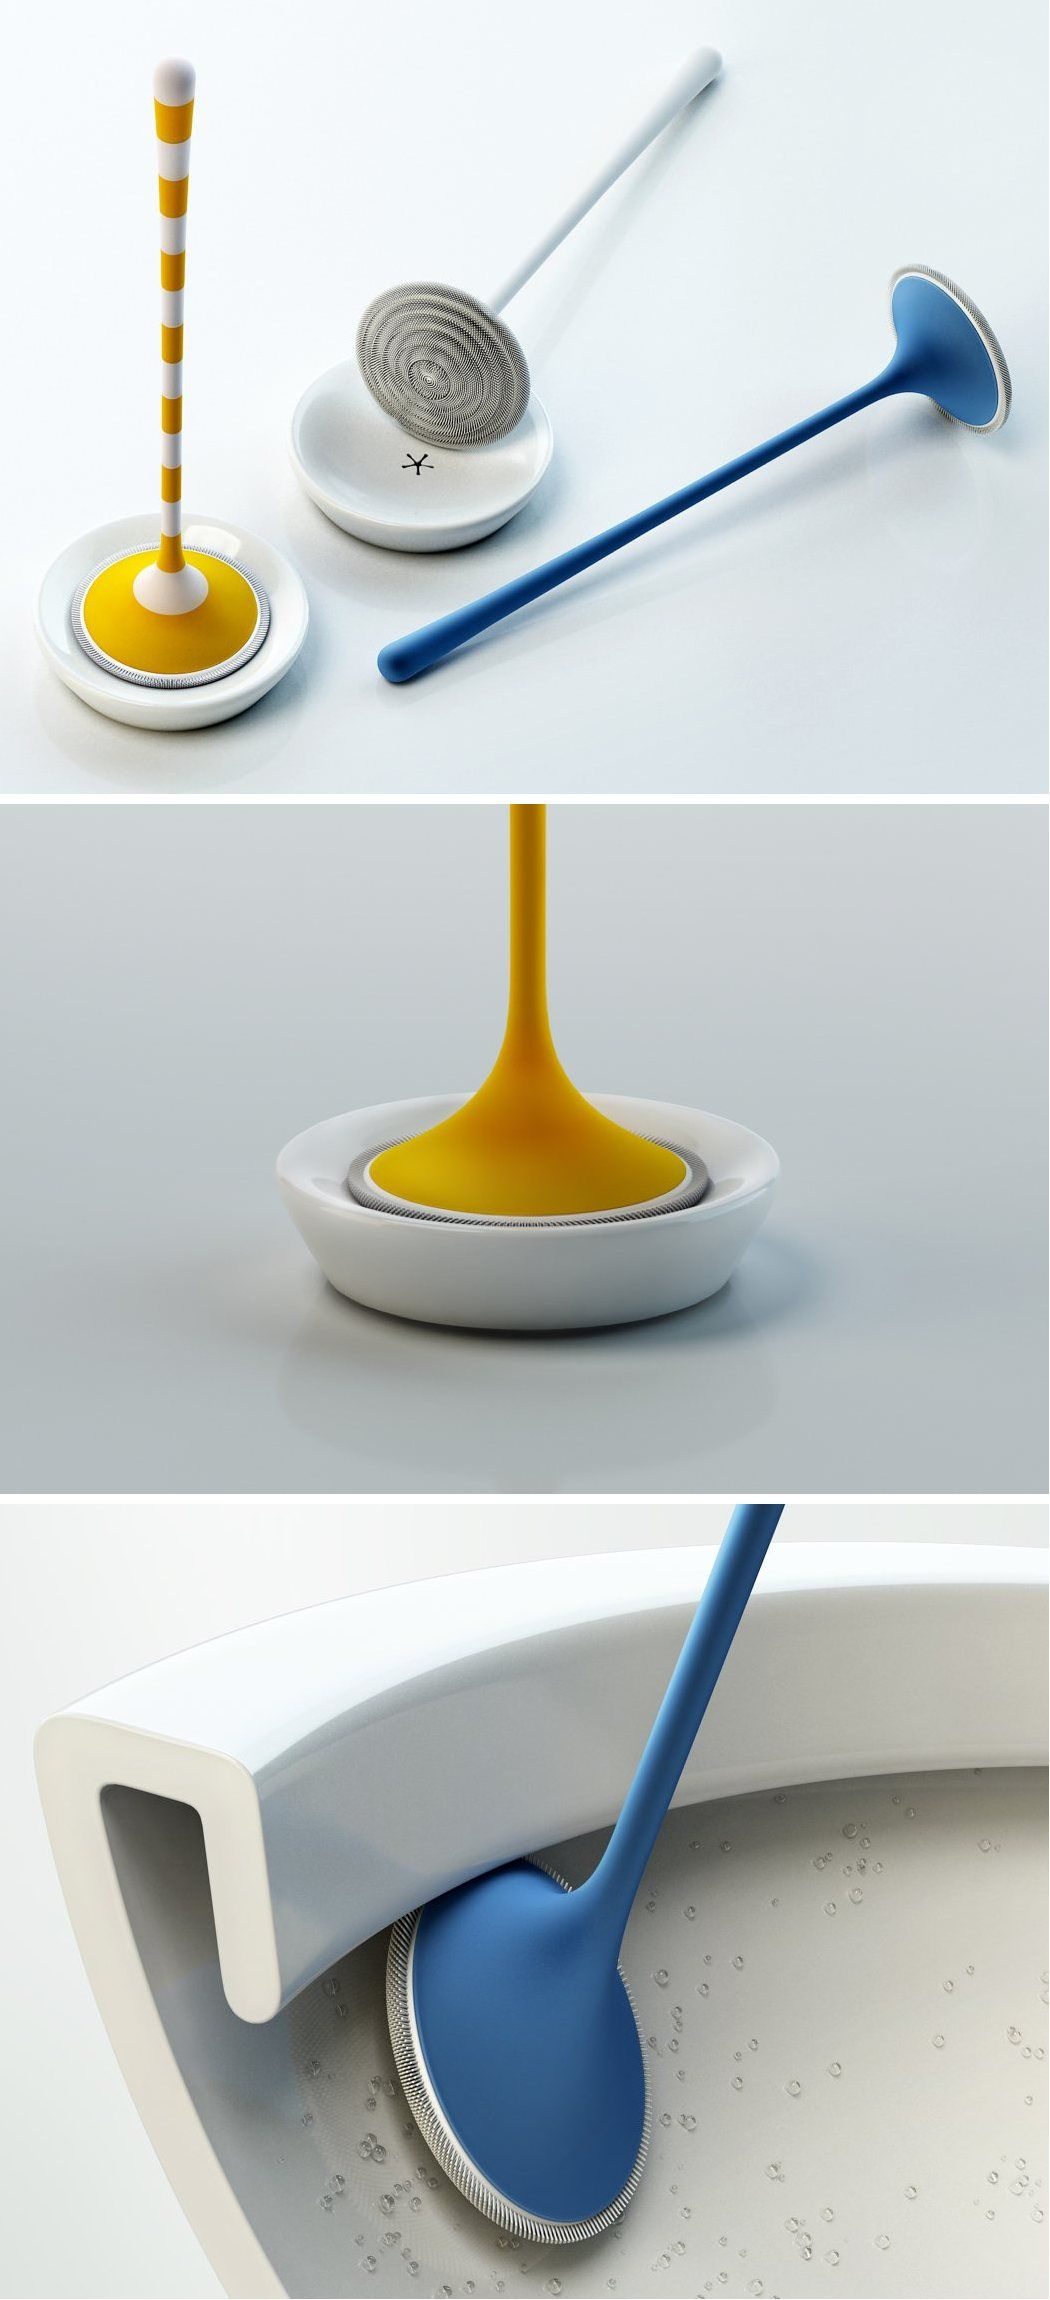 The Yosh toilet brush is a redesigned